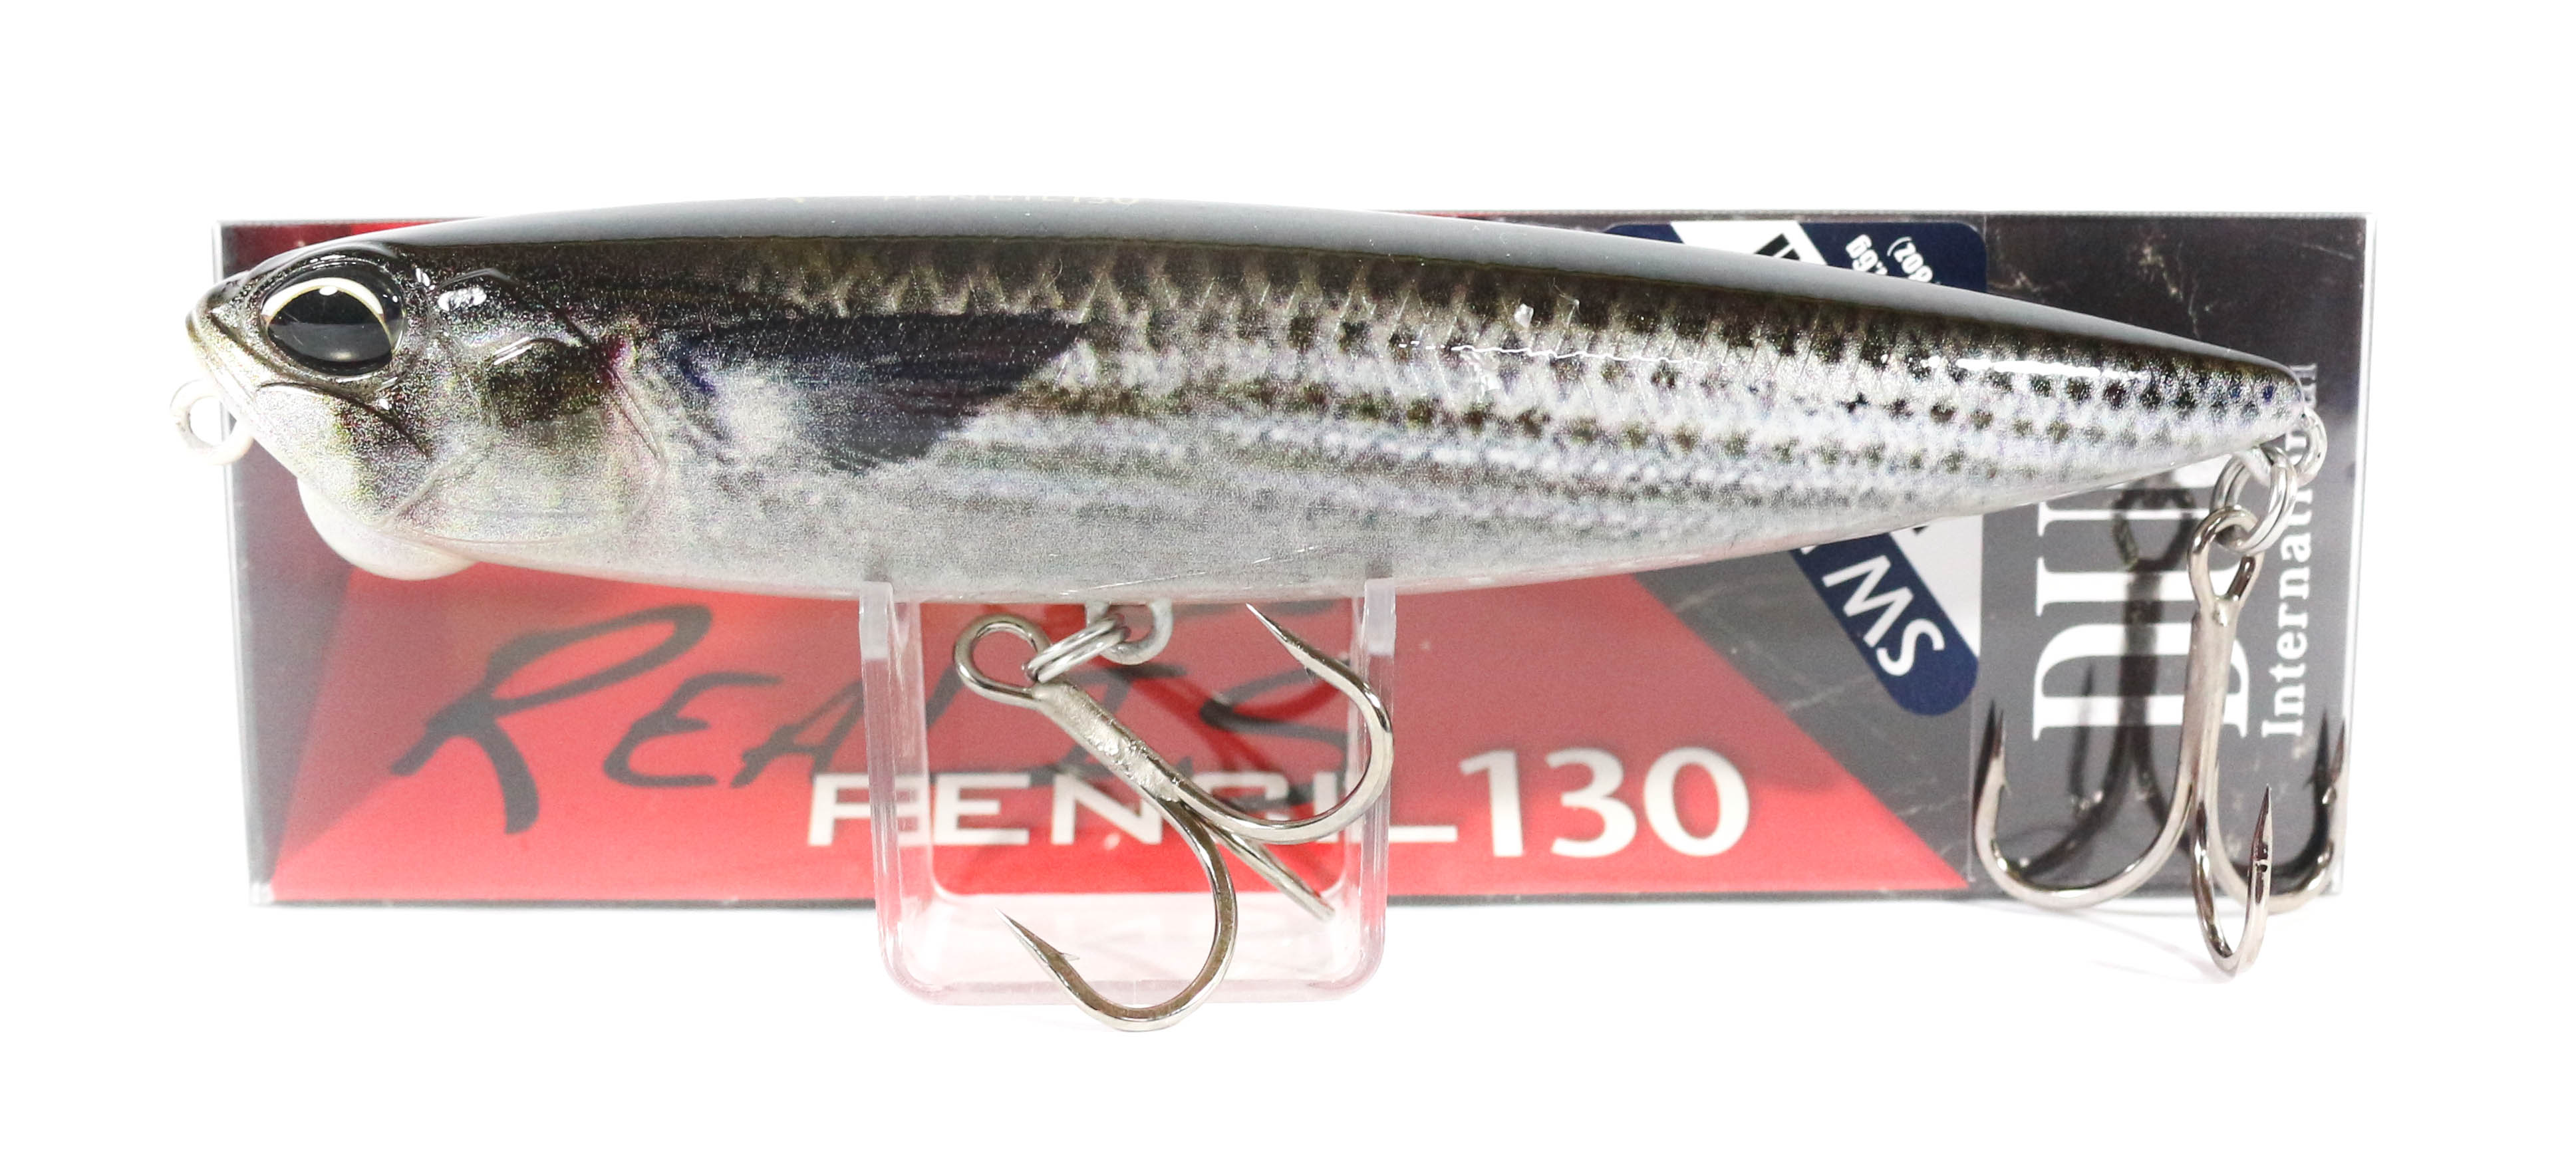 Duo Realis Pencil 130 SW Topwater Floating Lure ACC0804 (3808)